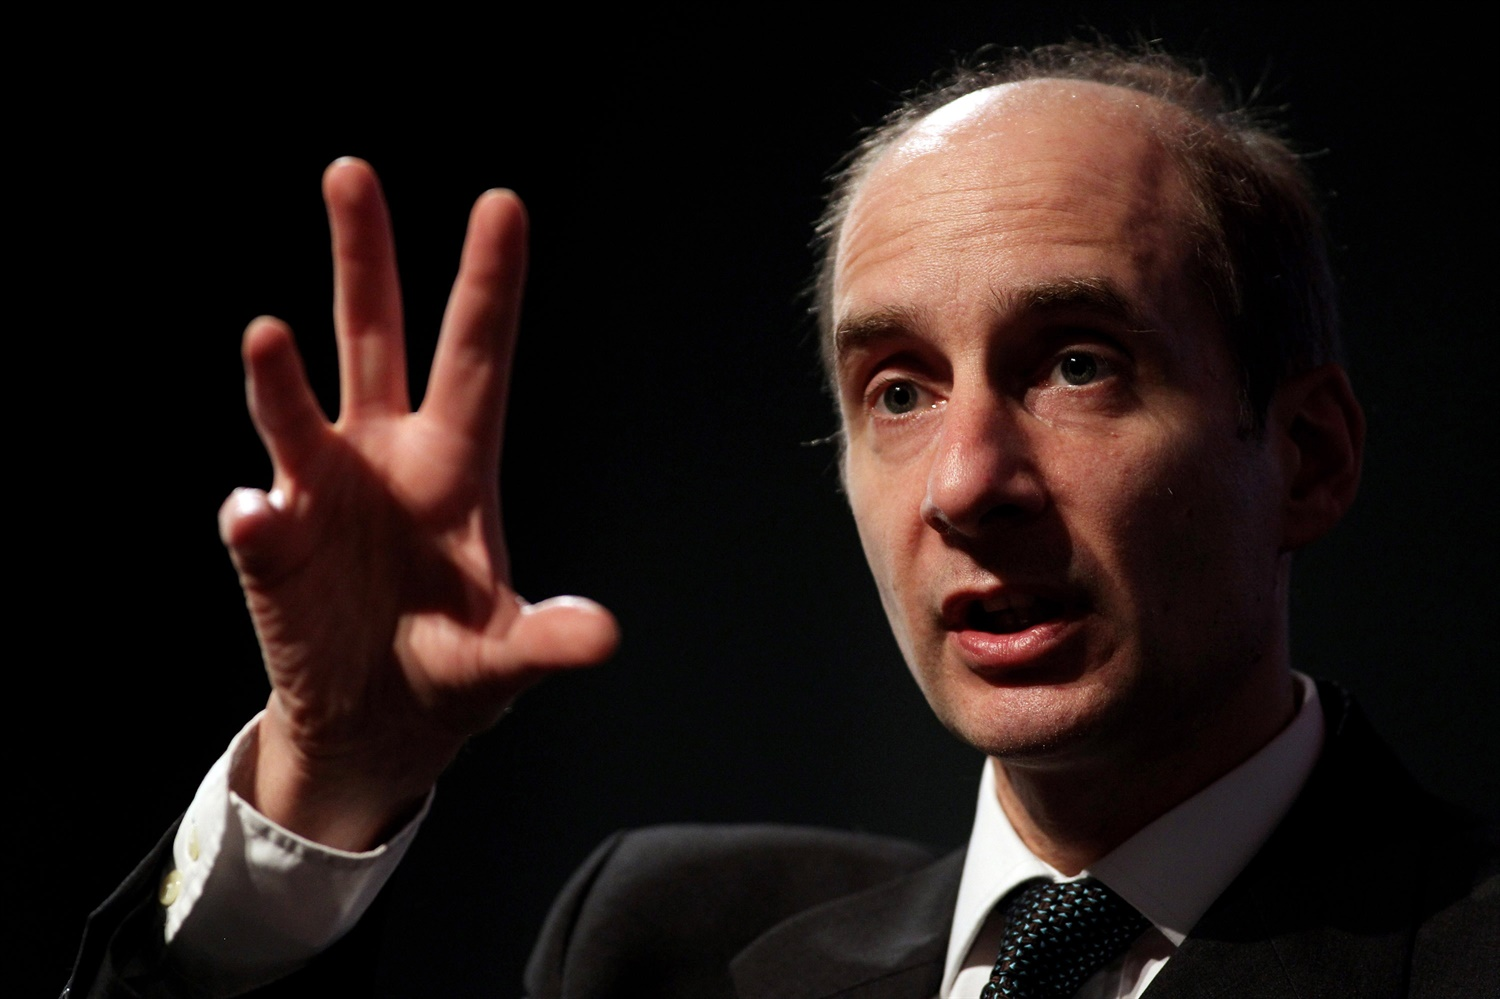 Lord Adonis appointed HS2 board member